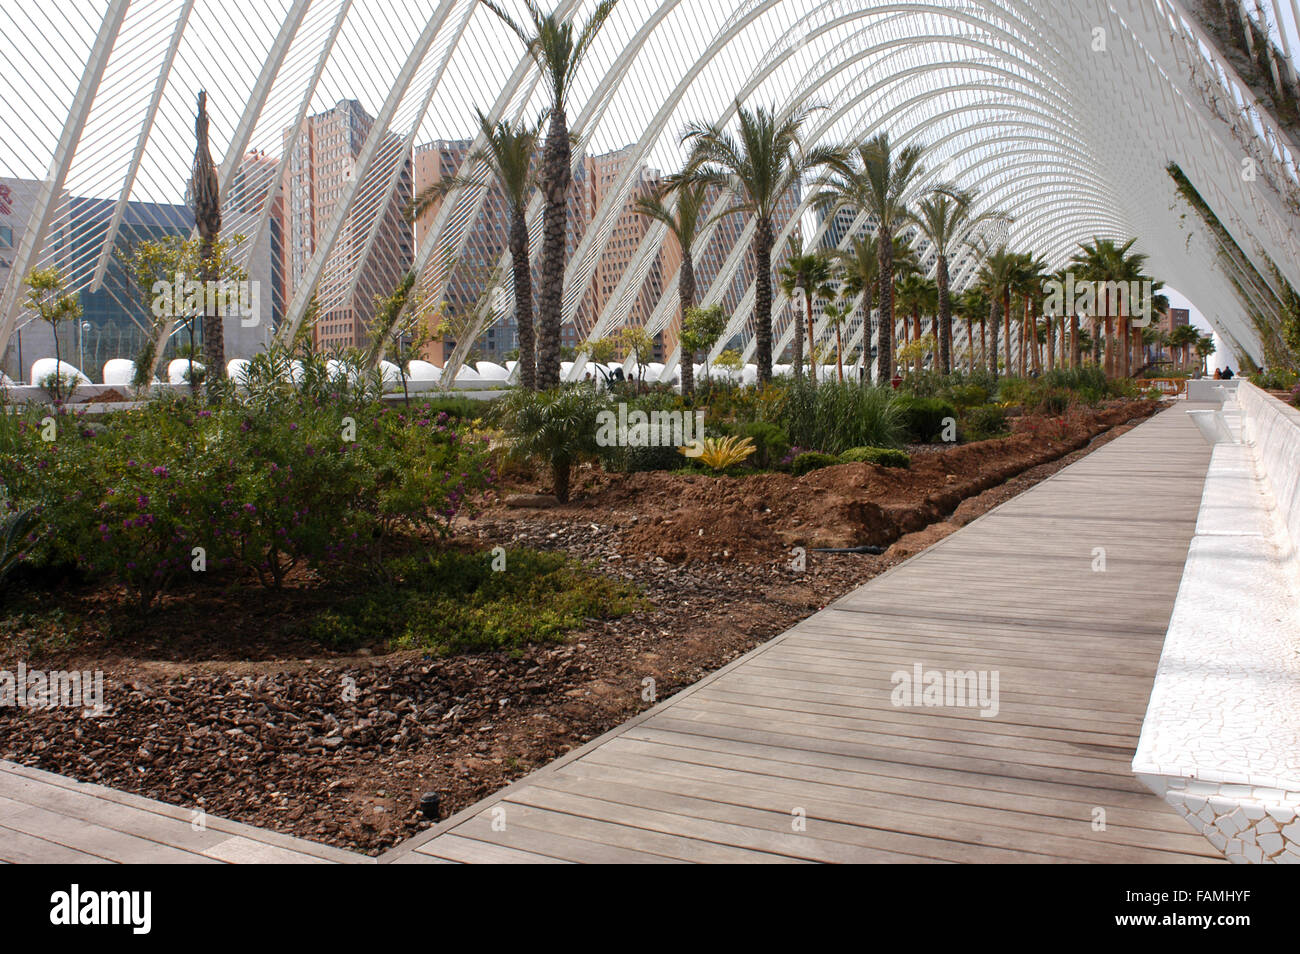 L'Umbracle - a landscaped walk in the City of Arts and Sciences in Valencia, Spain. Stock Photo